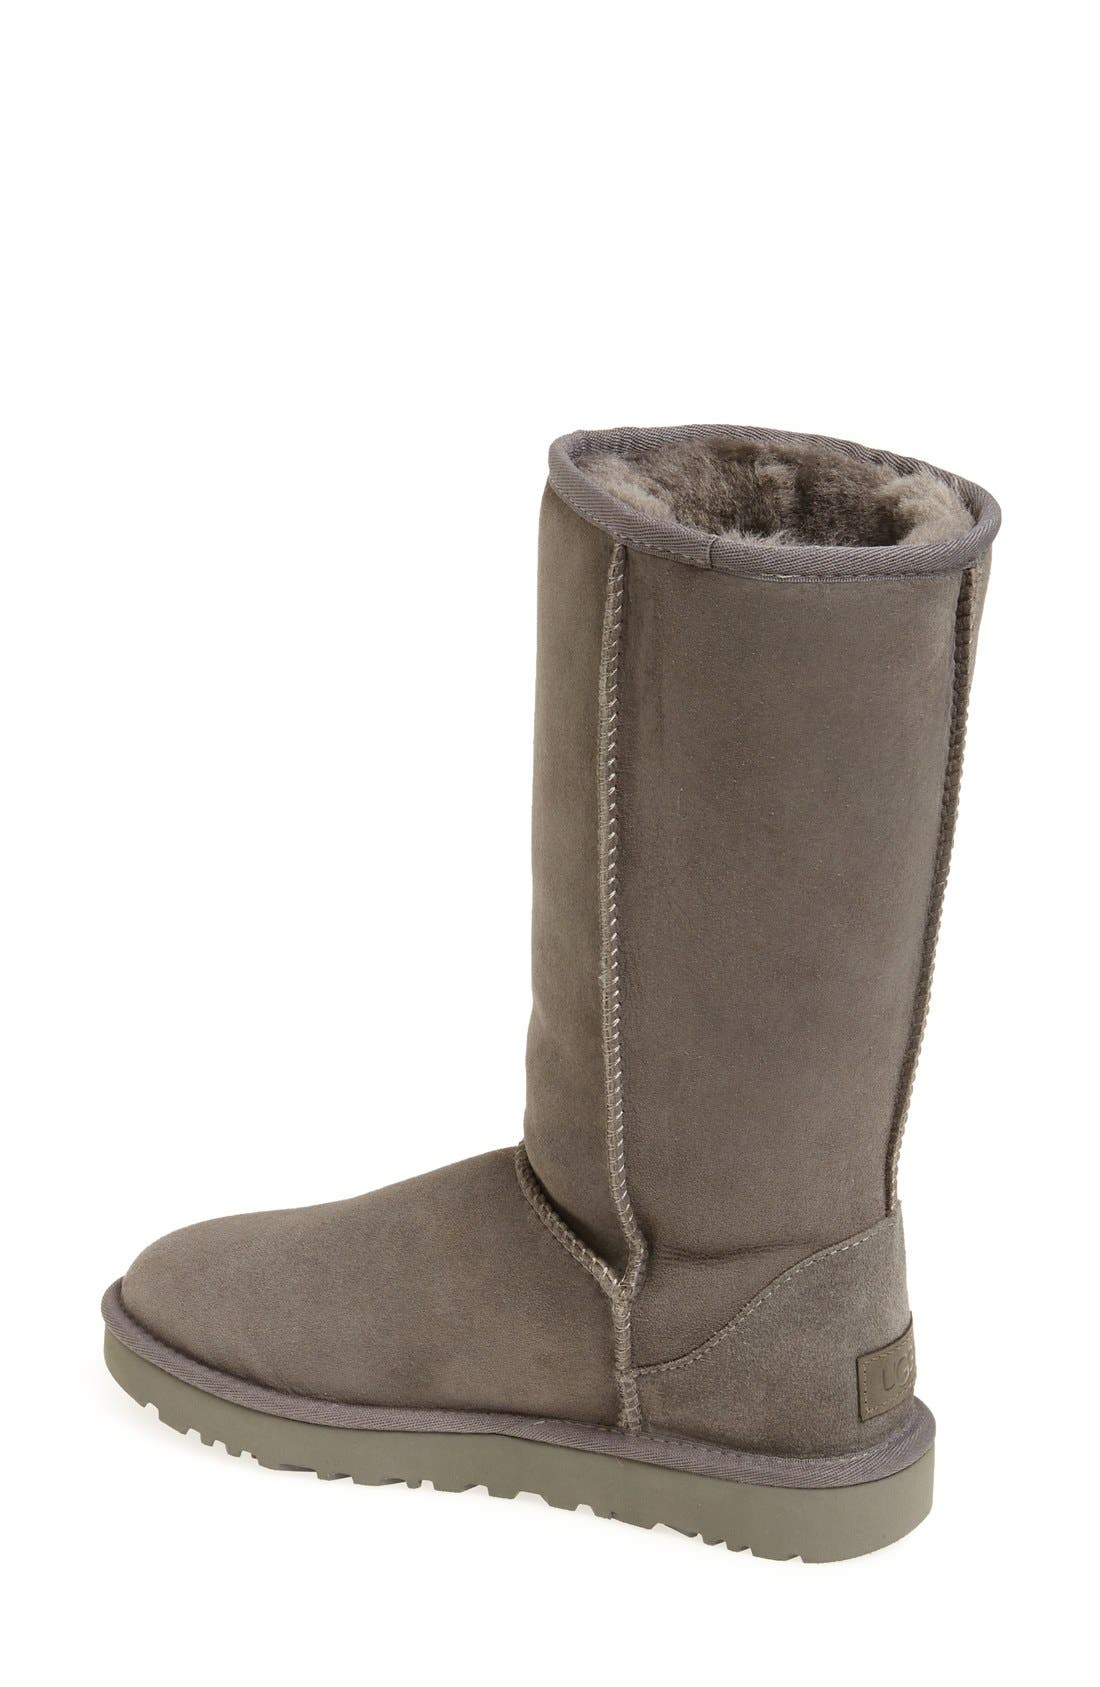 'Classic II' Genuine Shearling Lined Tall Boot,                             Alternate thumbnail 2, color,                             GREY SUEDE